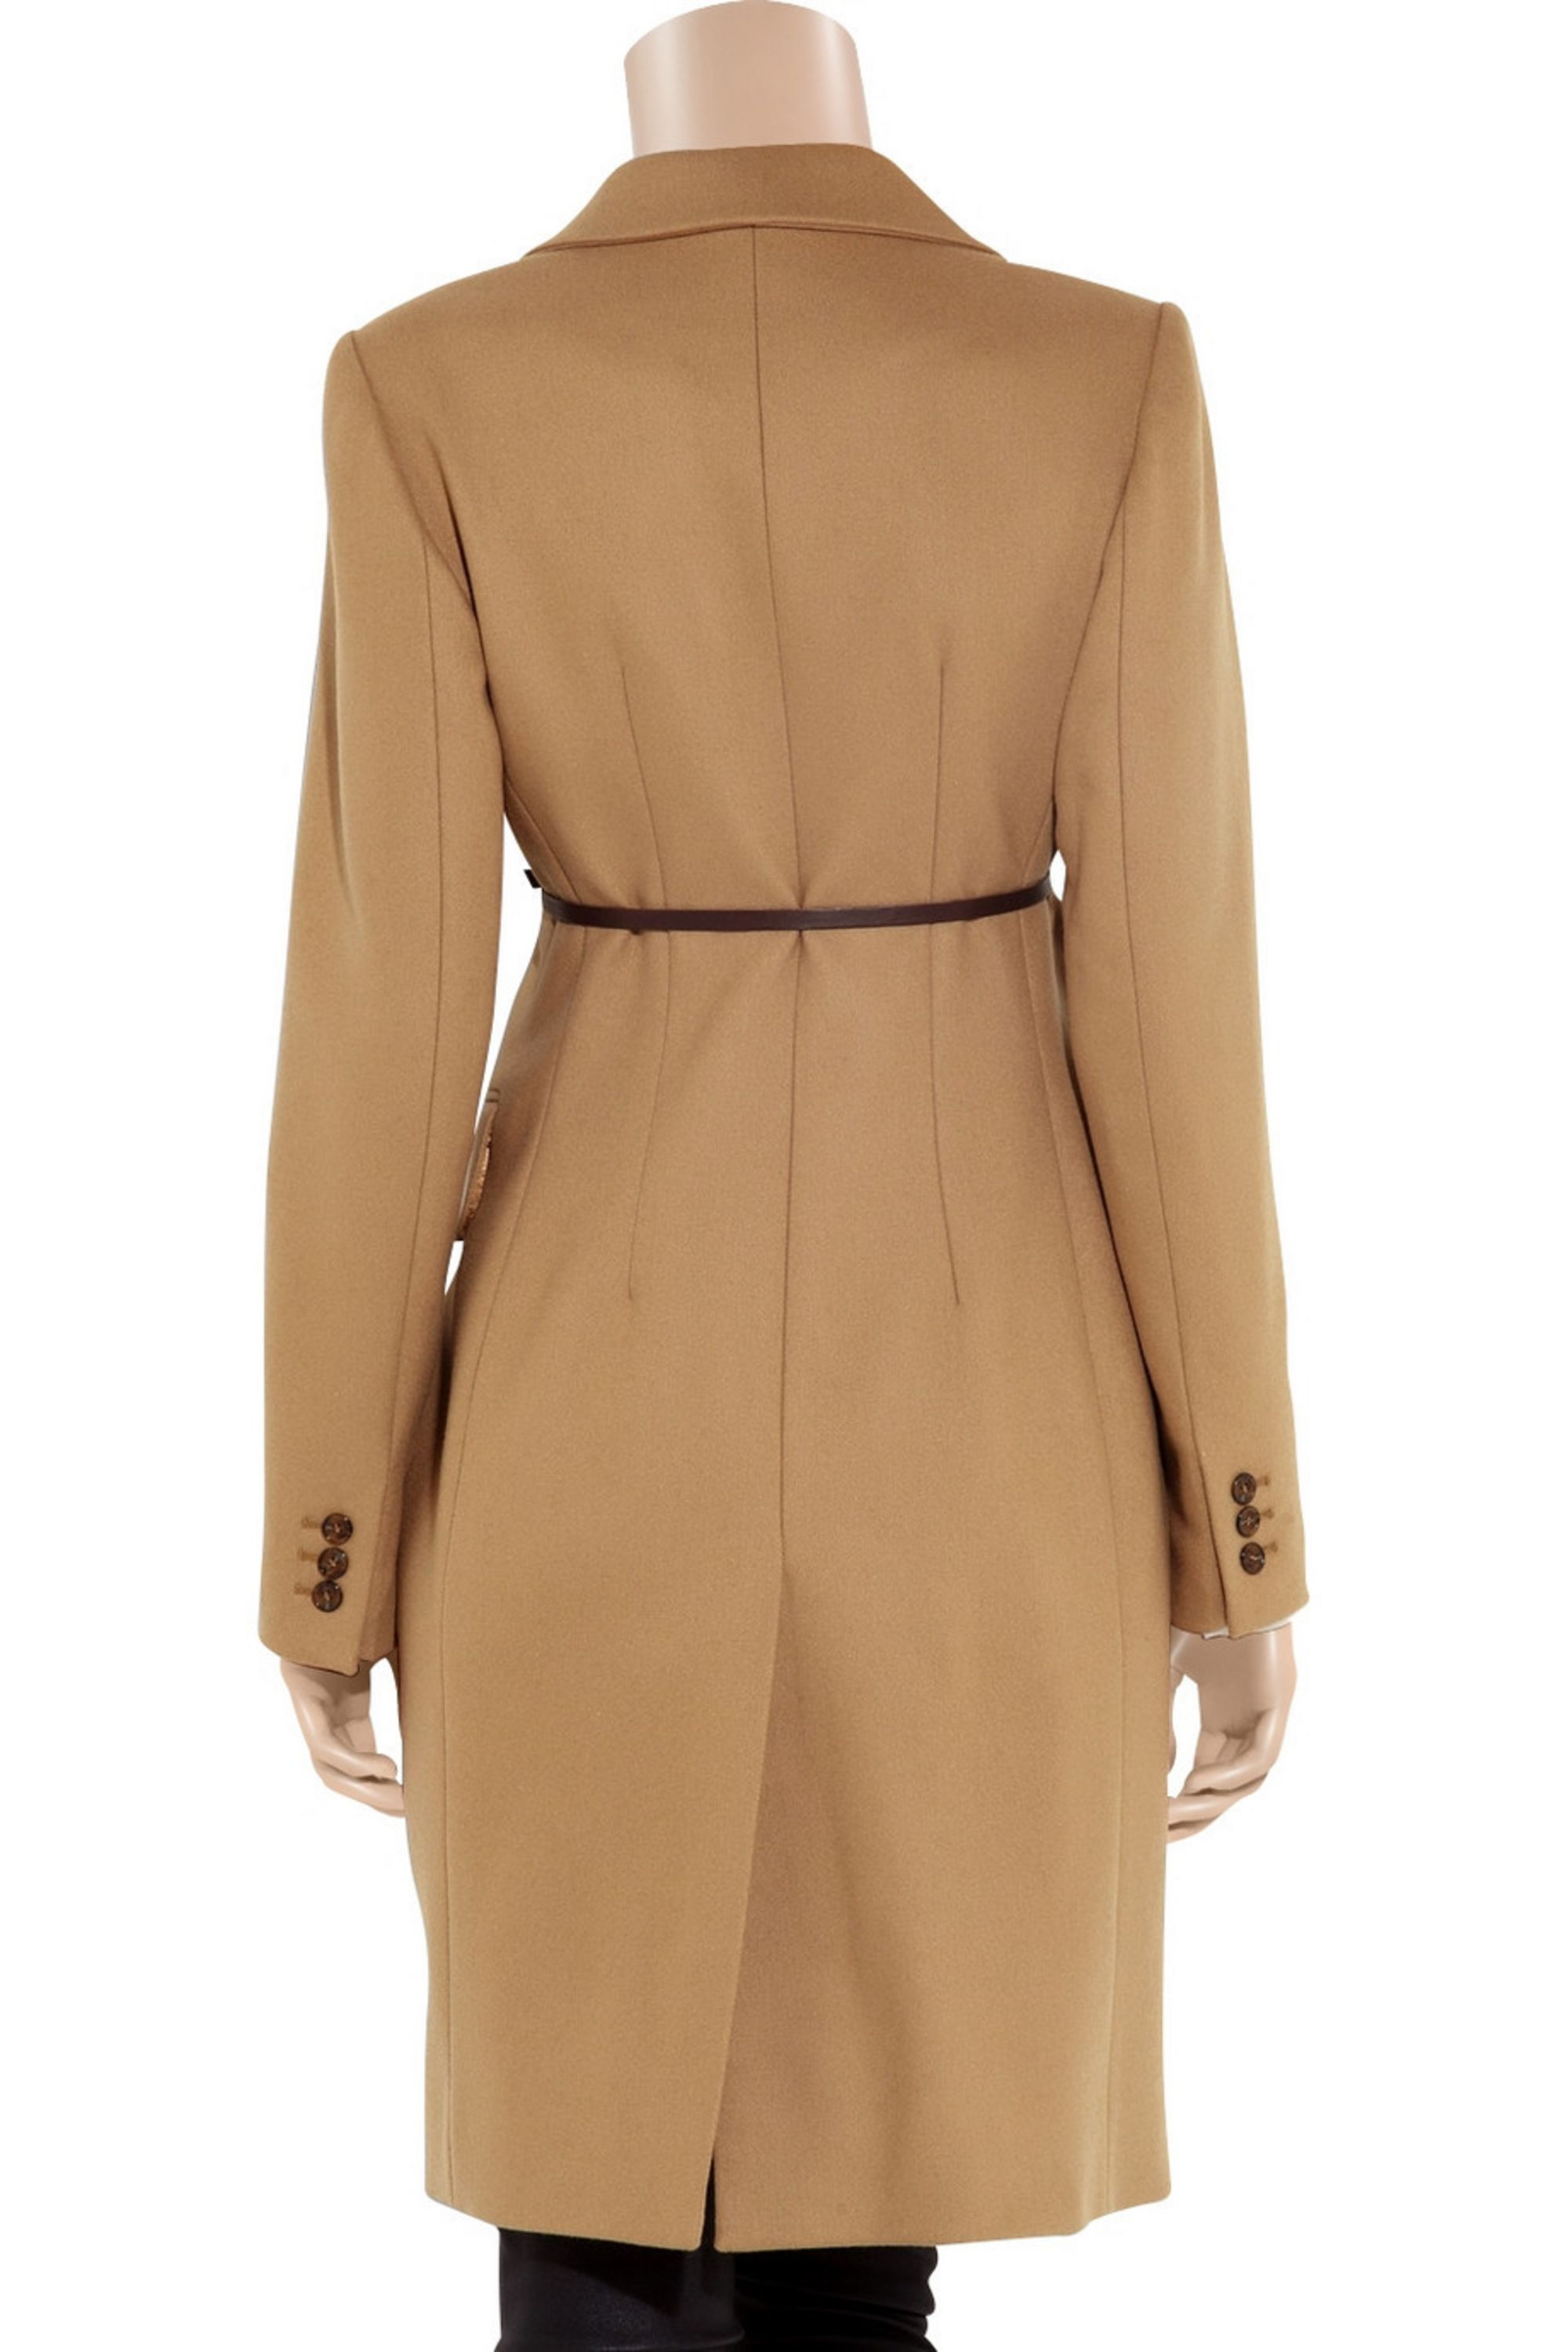 Carven Double-breasted wool-blend coat